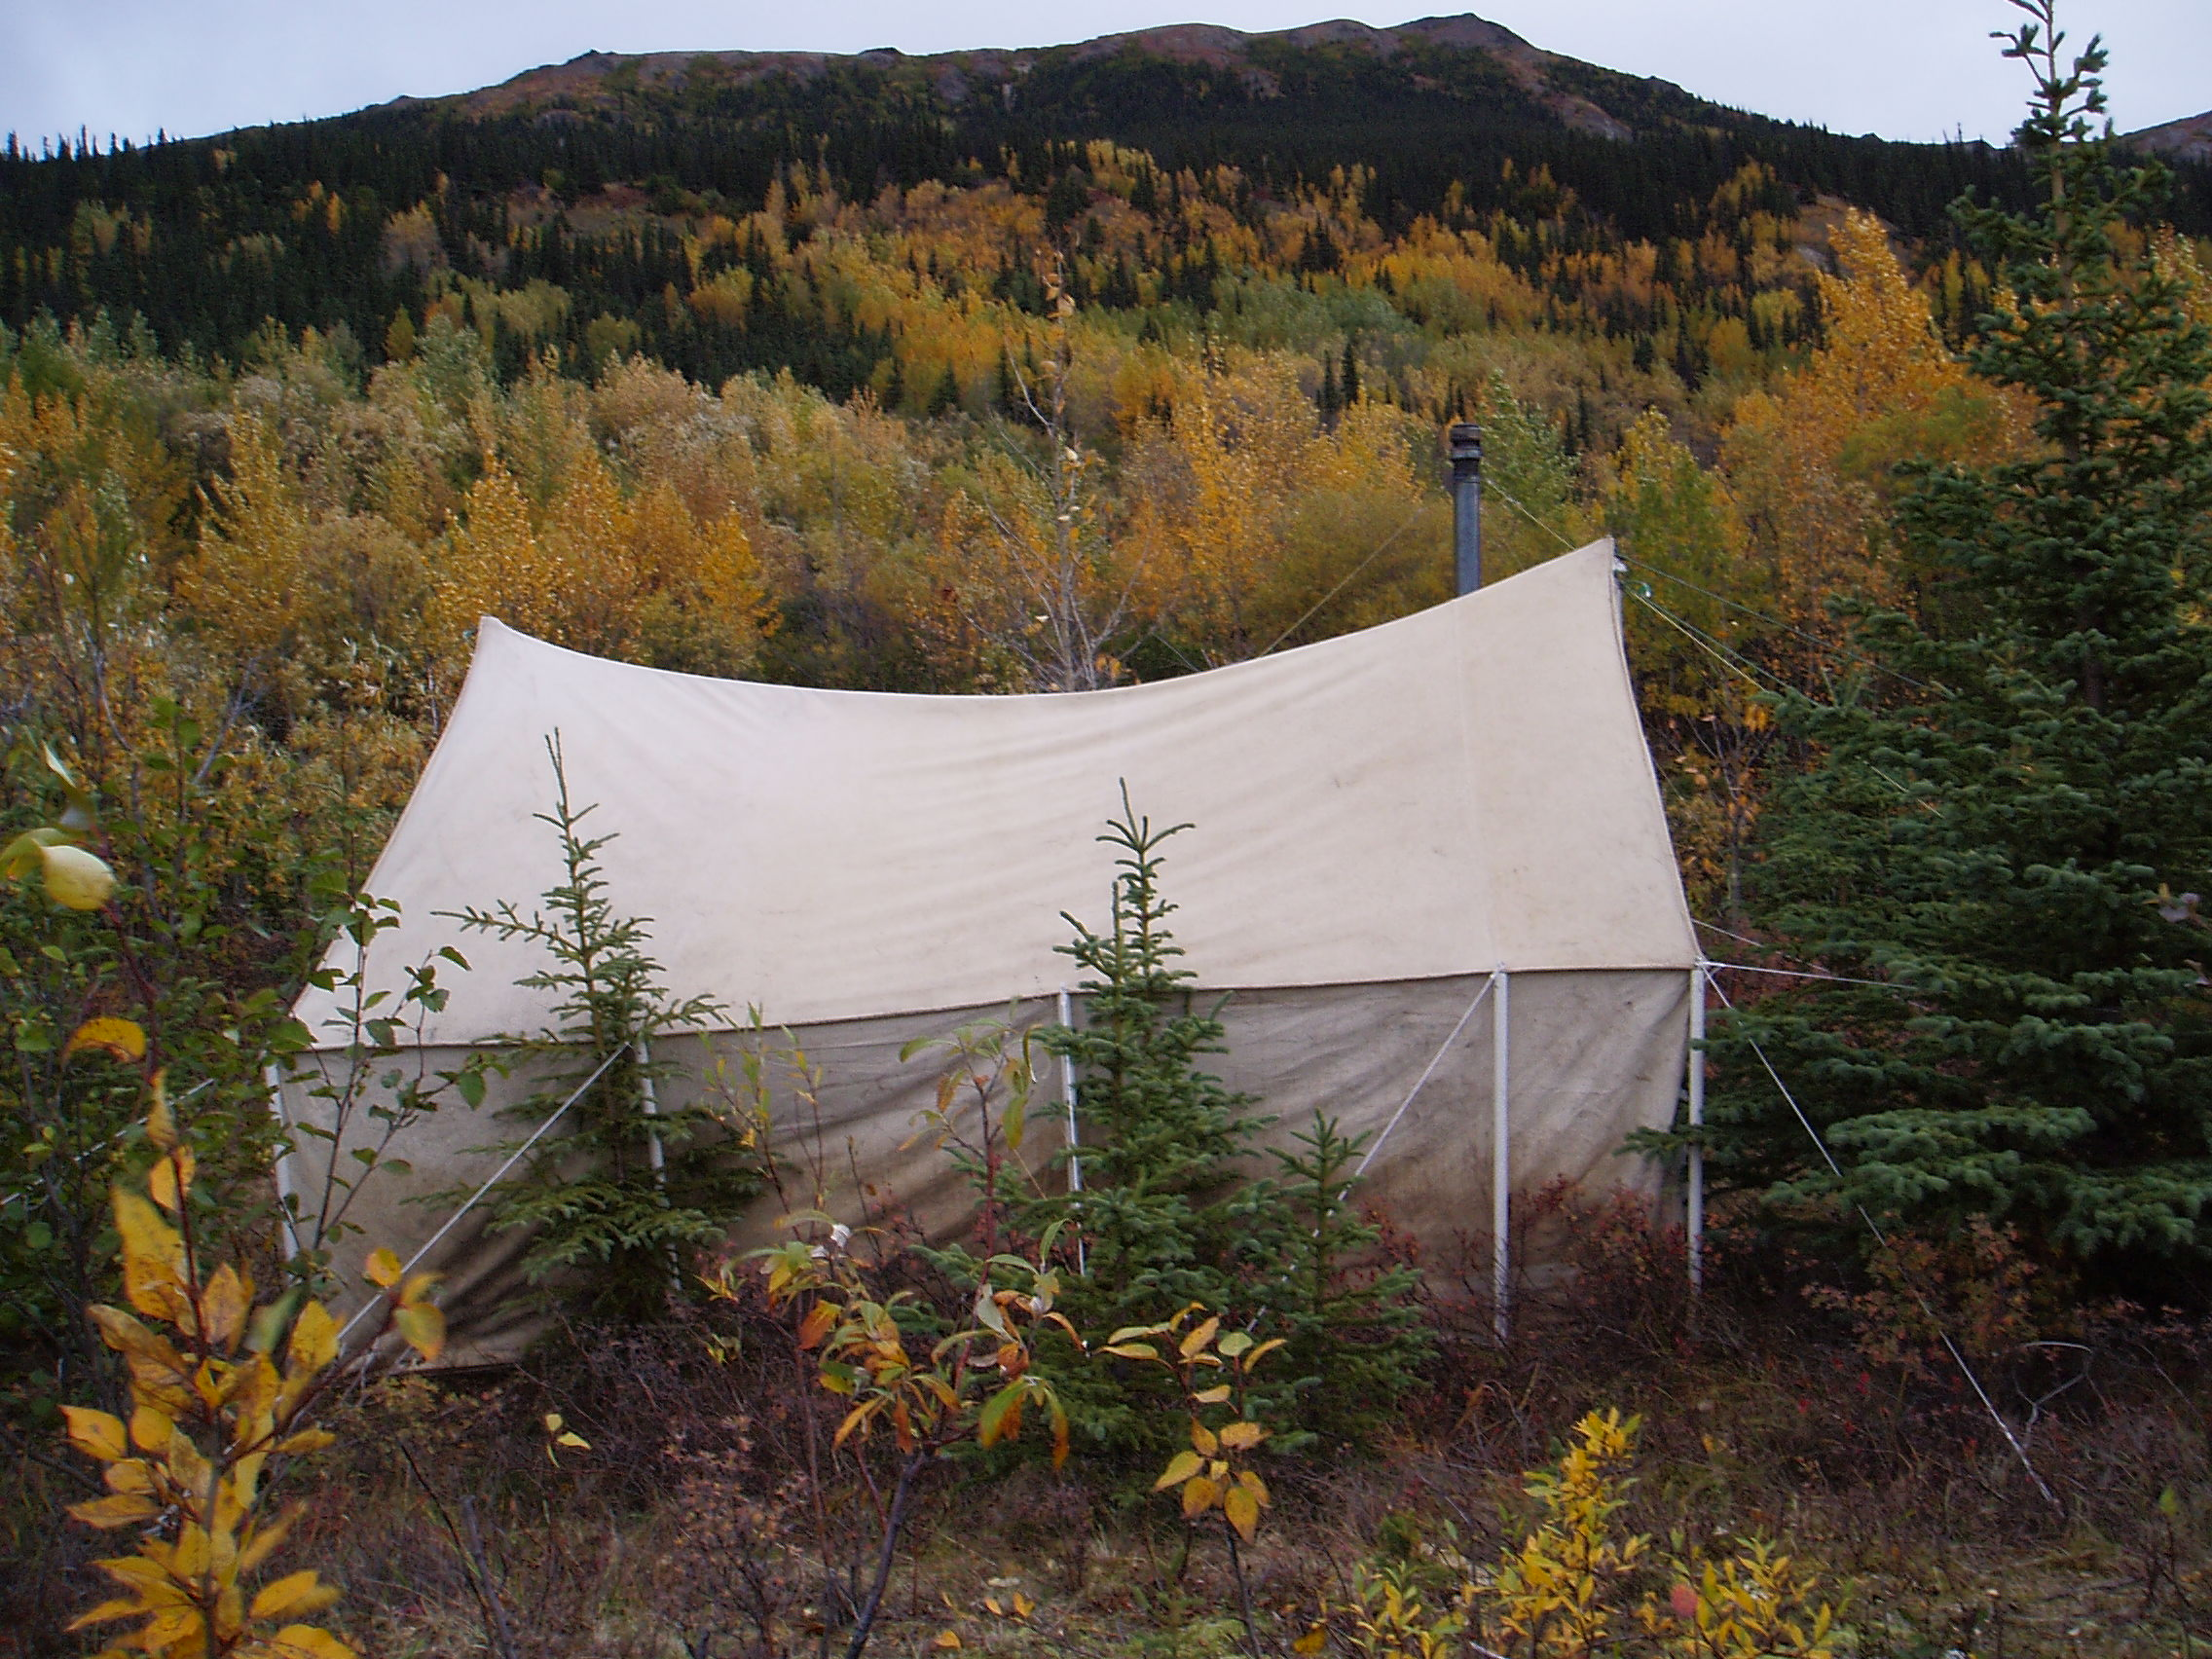 Our cook tent.